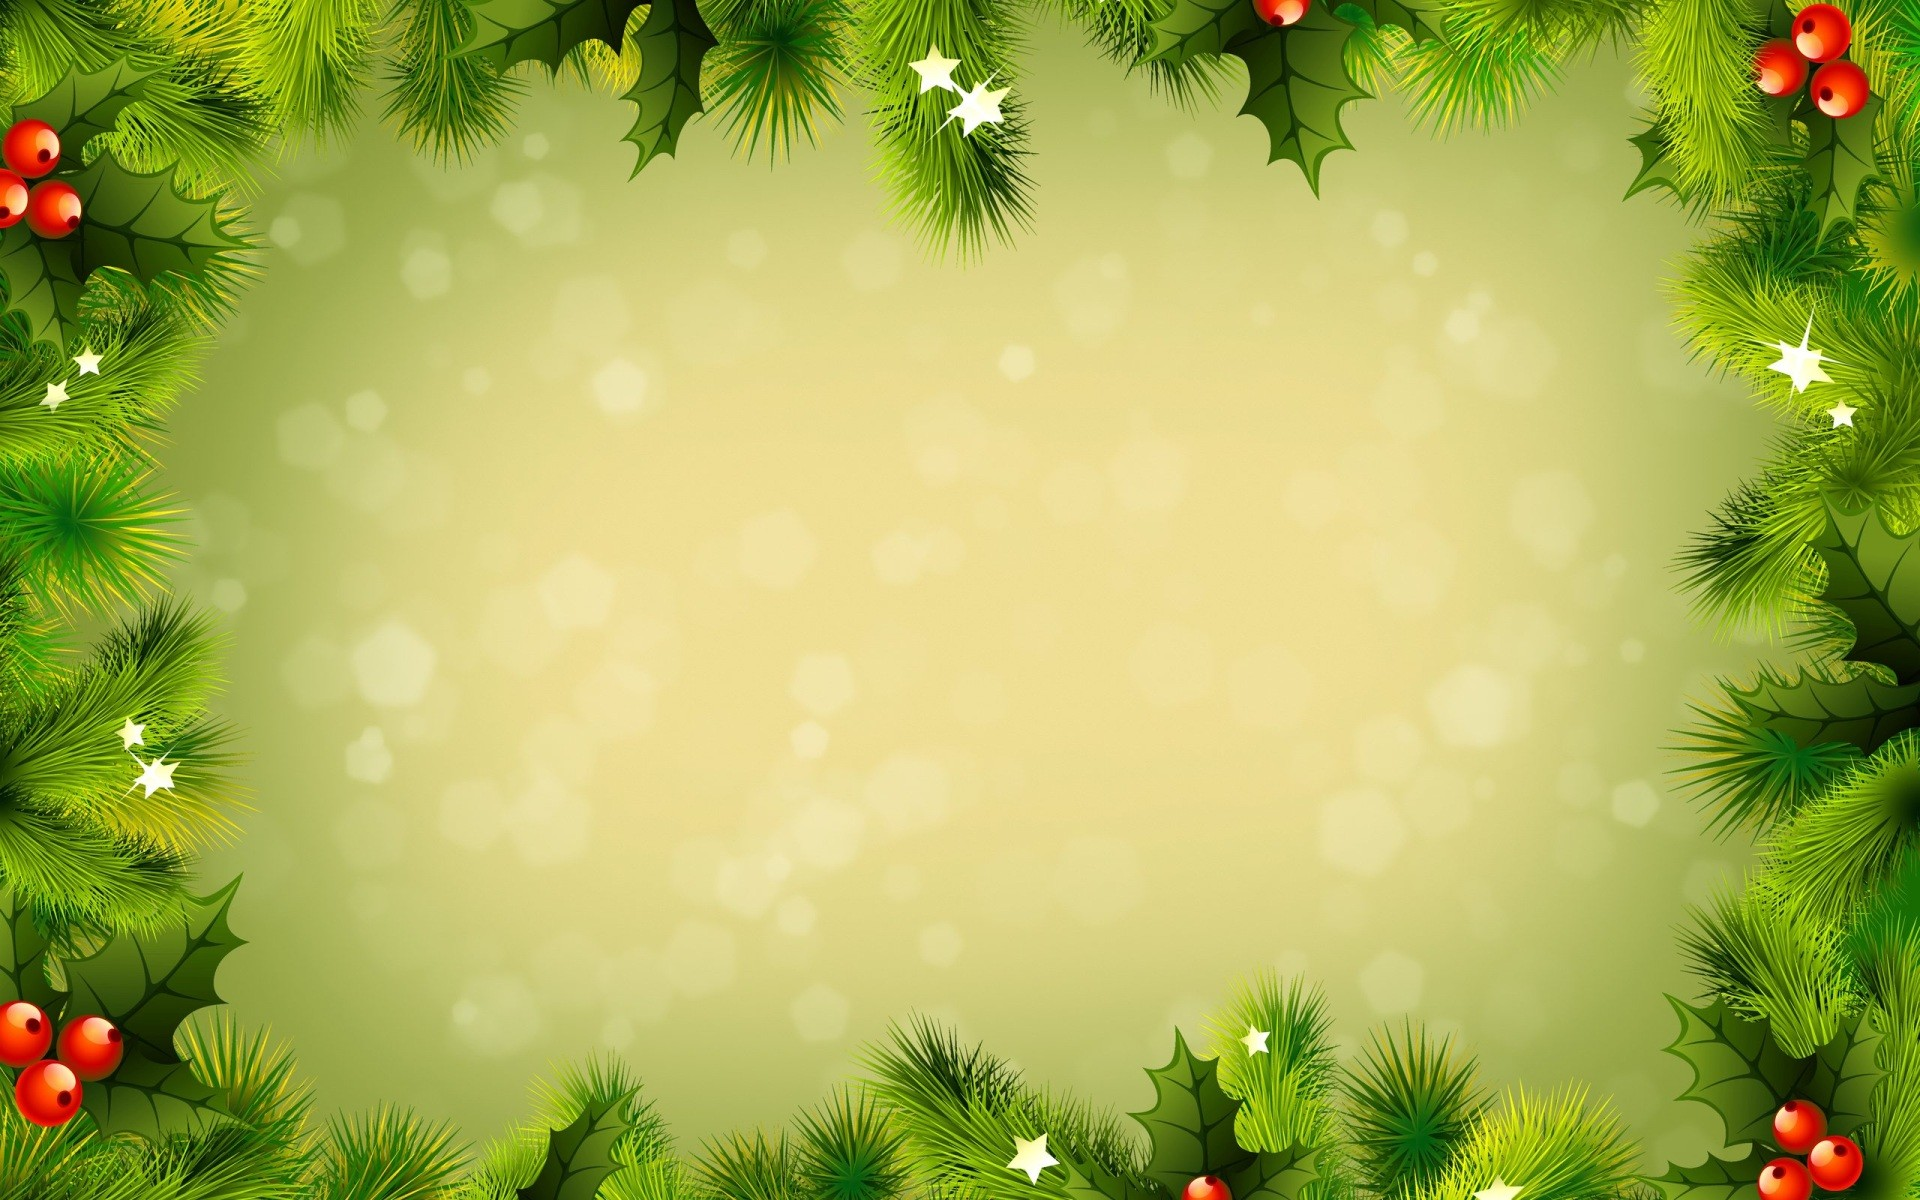 1920x1200 christmas free wallpaper cool hd wallpapers backgrounds arts